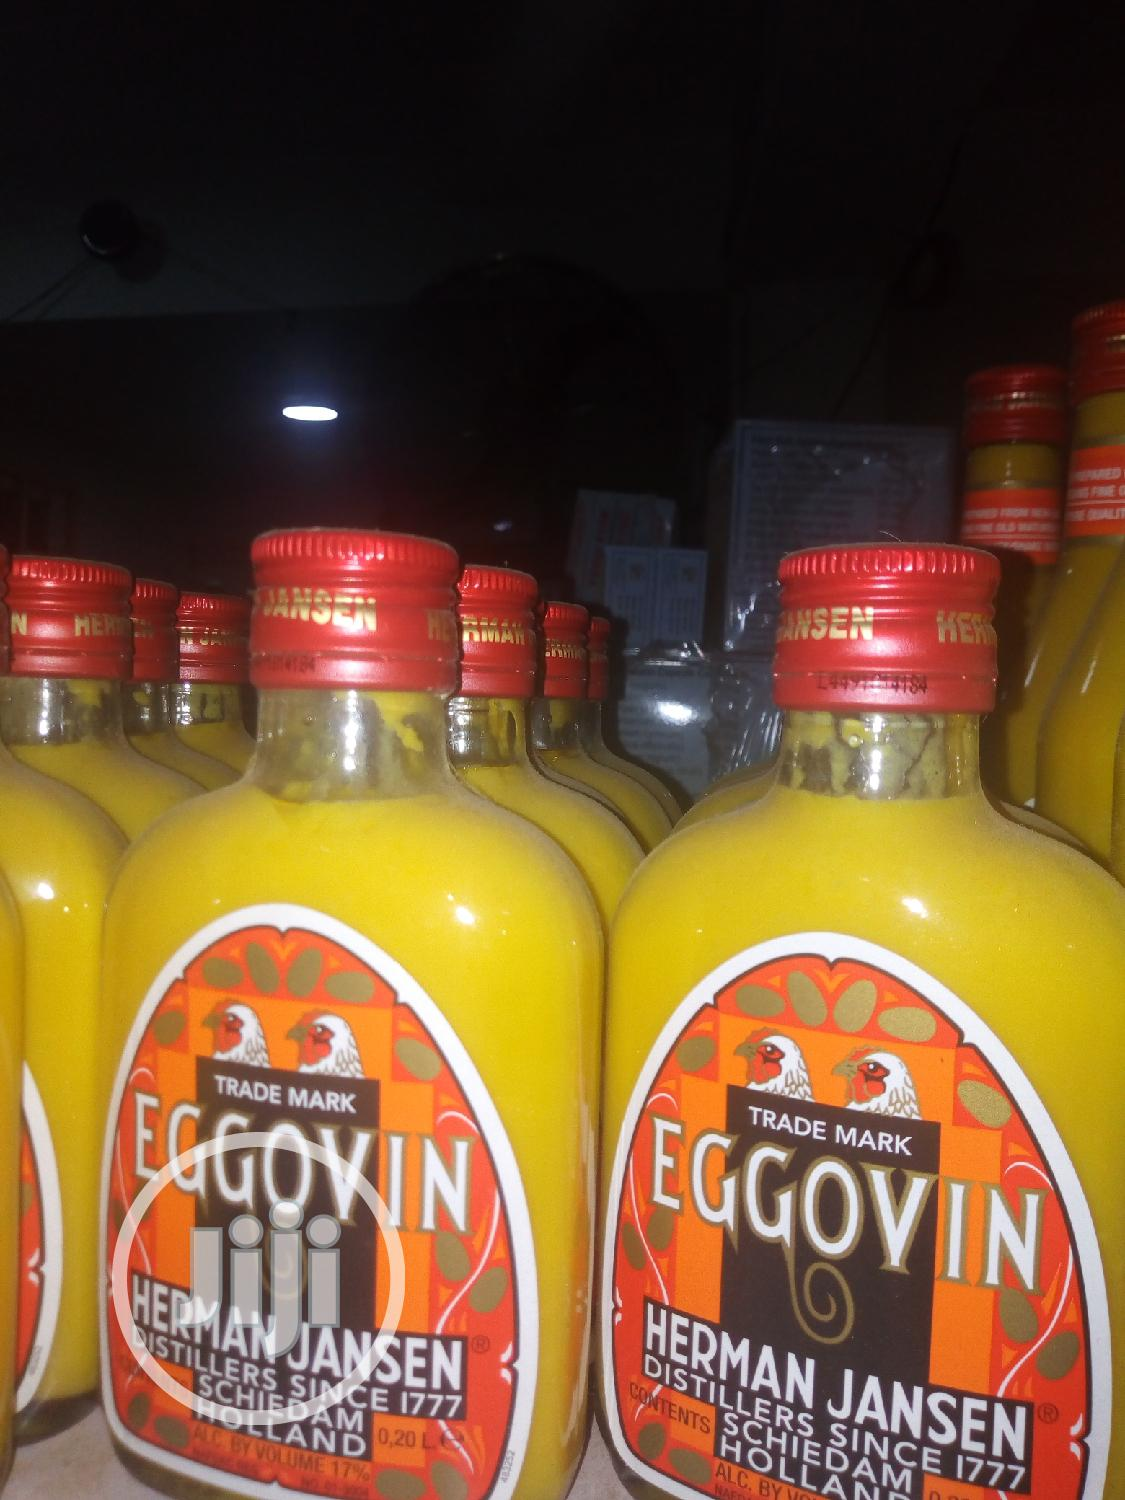 Eggovin Is Prepared From Newly Laid Eggs Which Makes Weight Gain